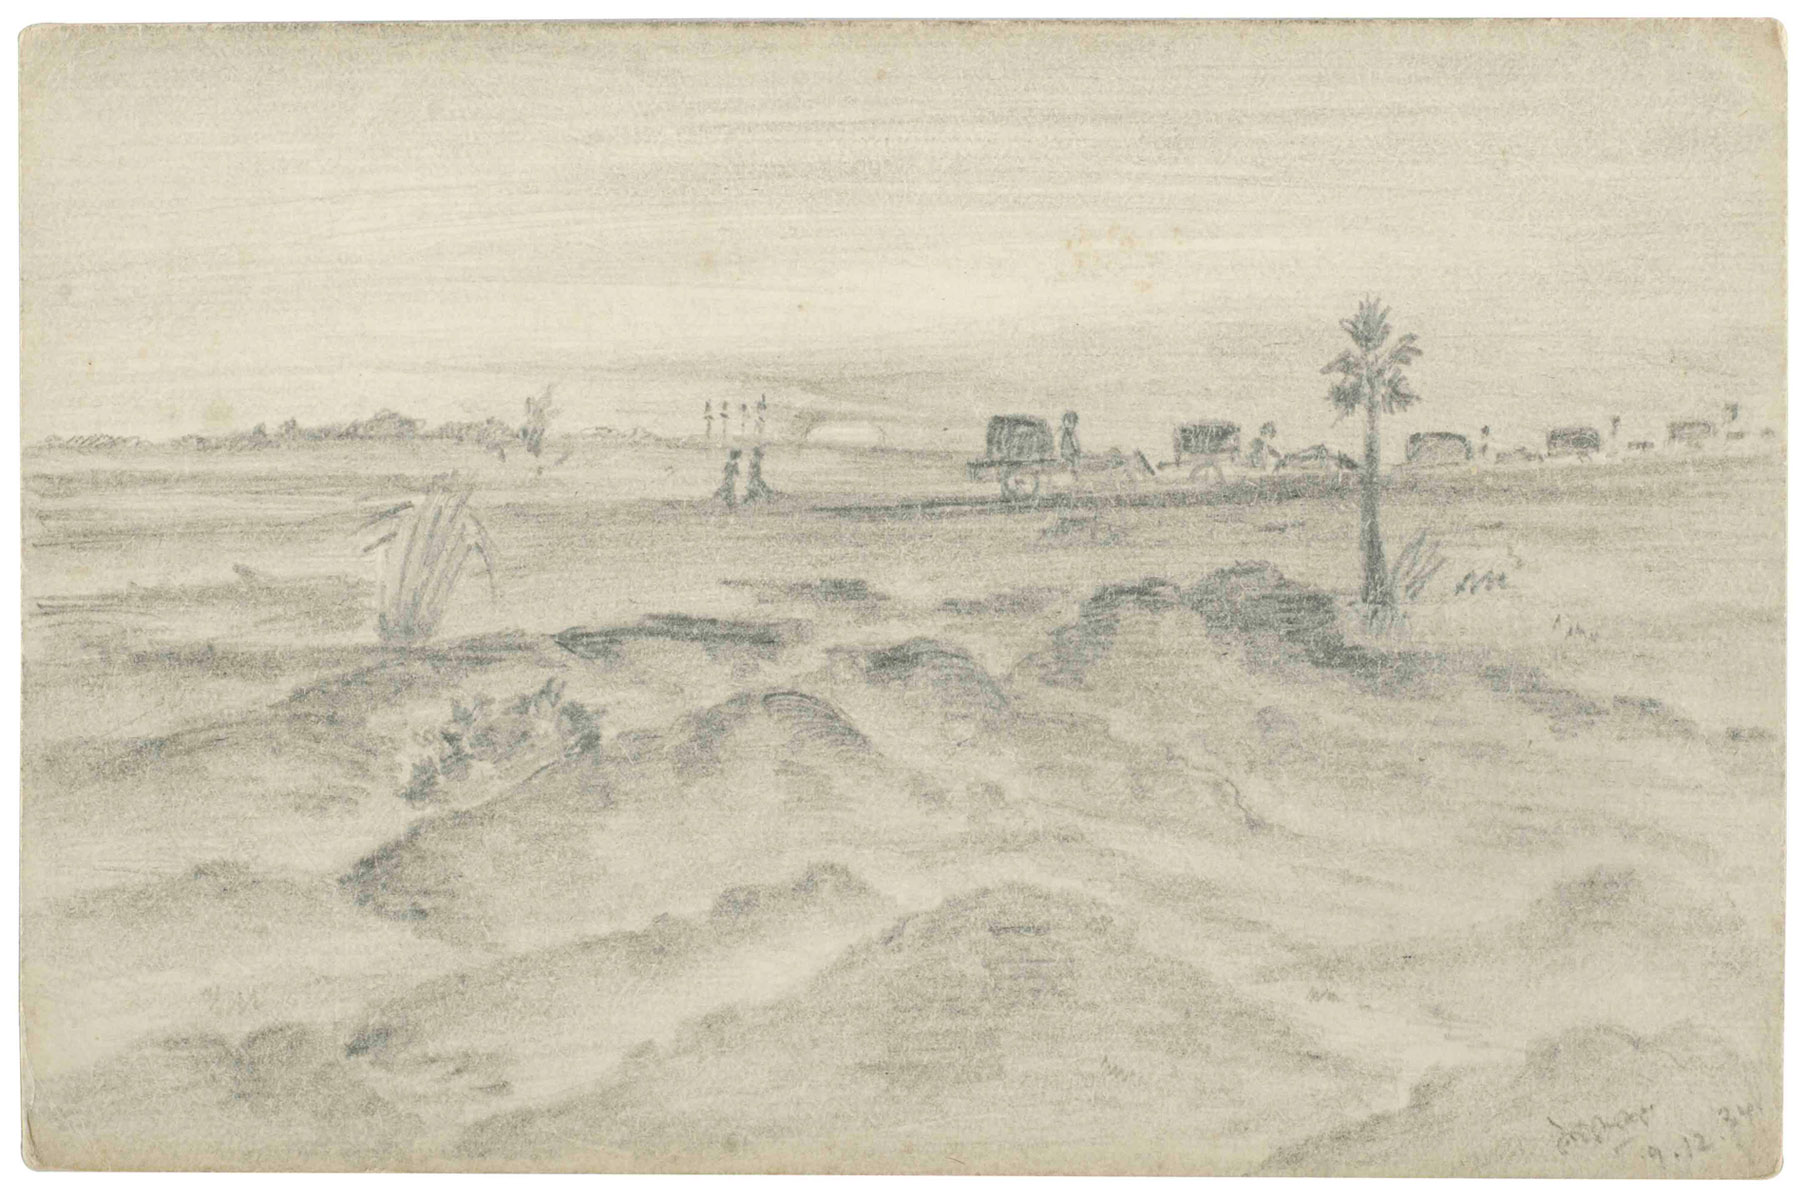 UNTITLED(Landscape with path)